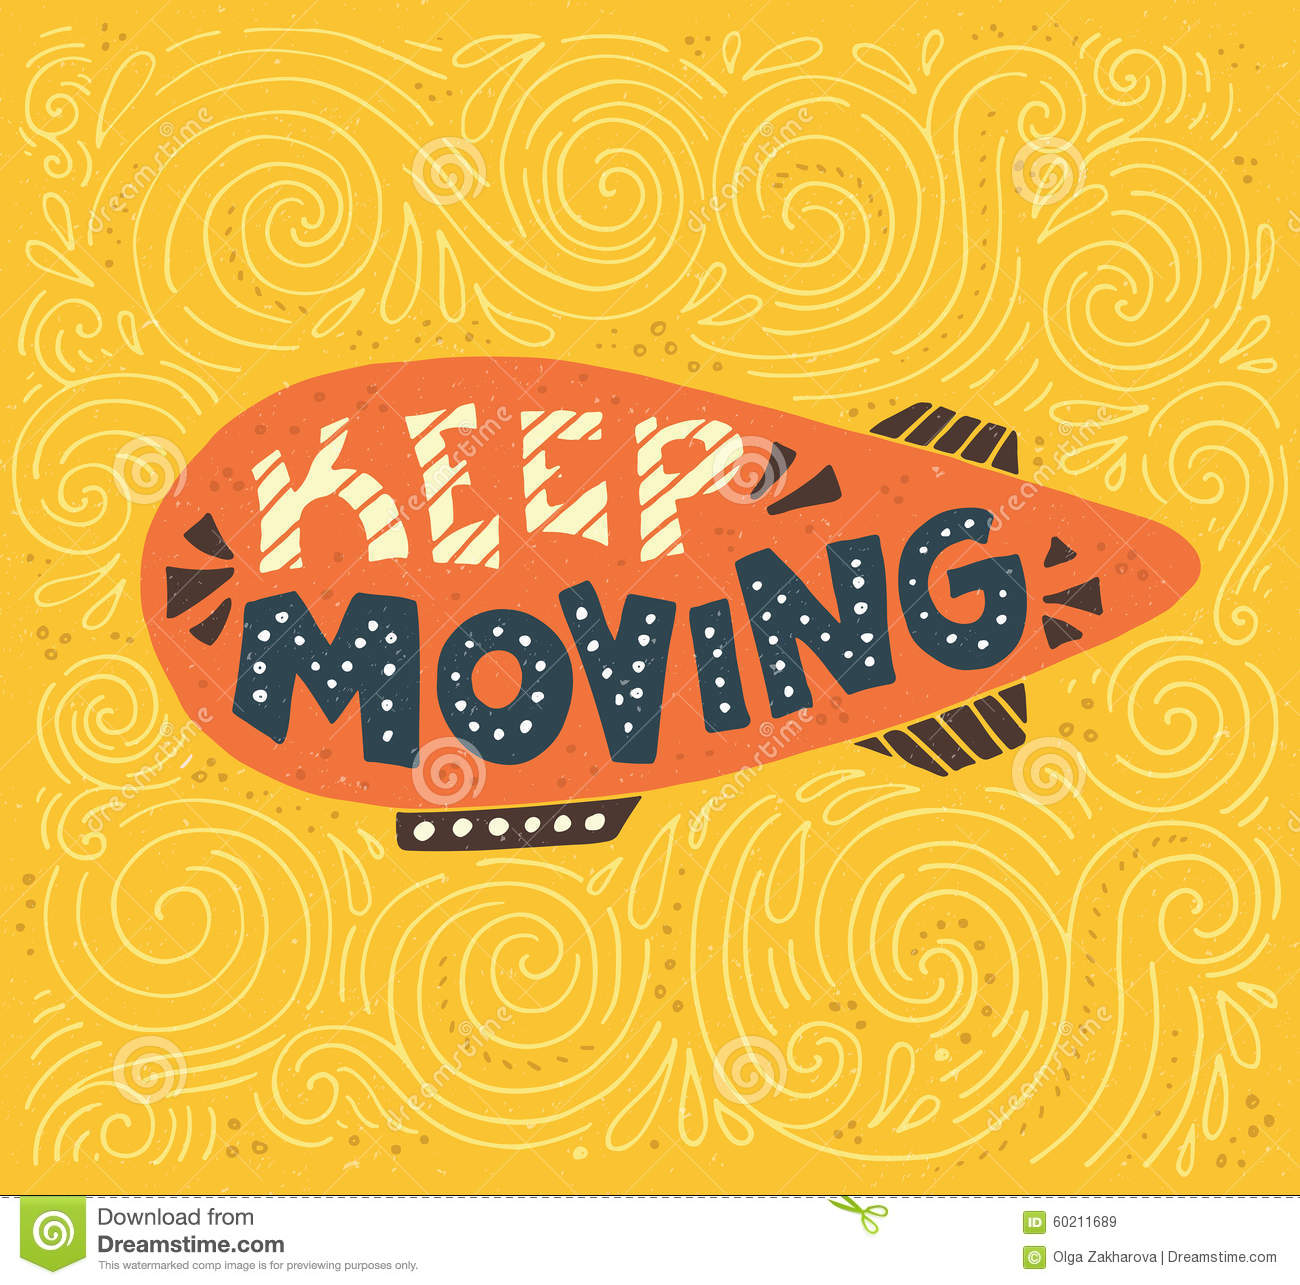 Keep moving stock illustration illustration of inspiration 60211689 keep moving kristyandbryce Image collections